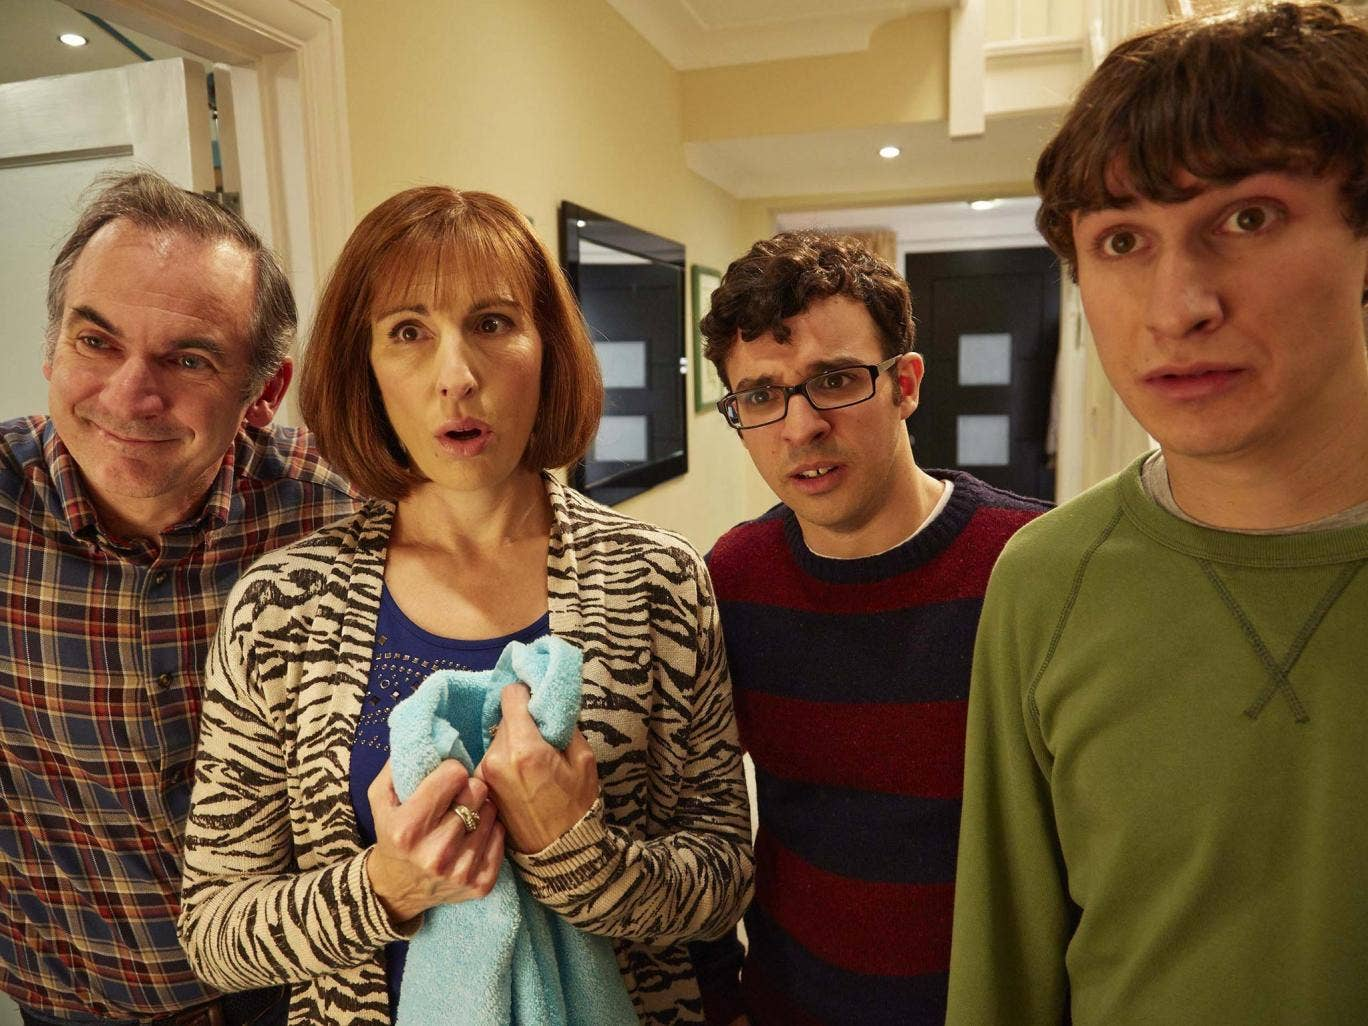 The new series of Friday Night Dinner on Channel 4 will be starting this week